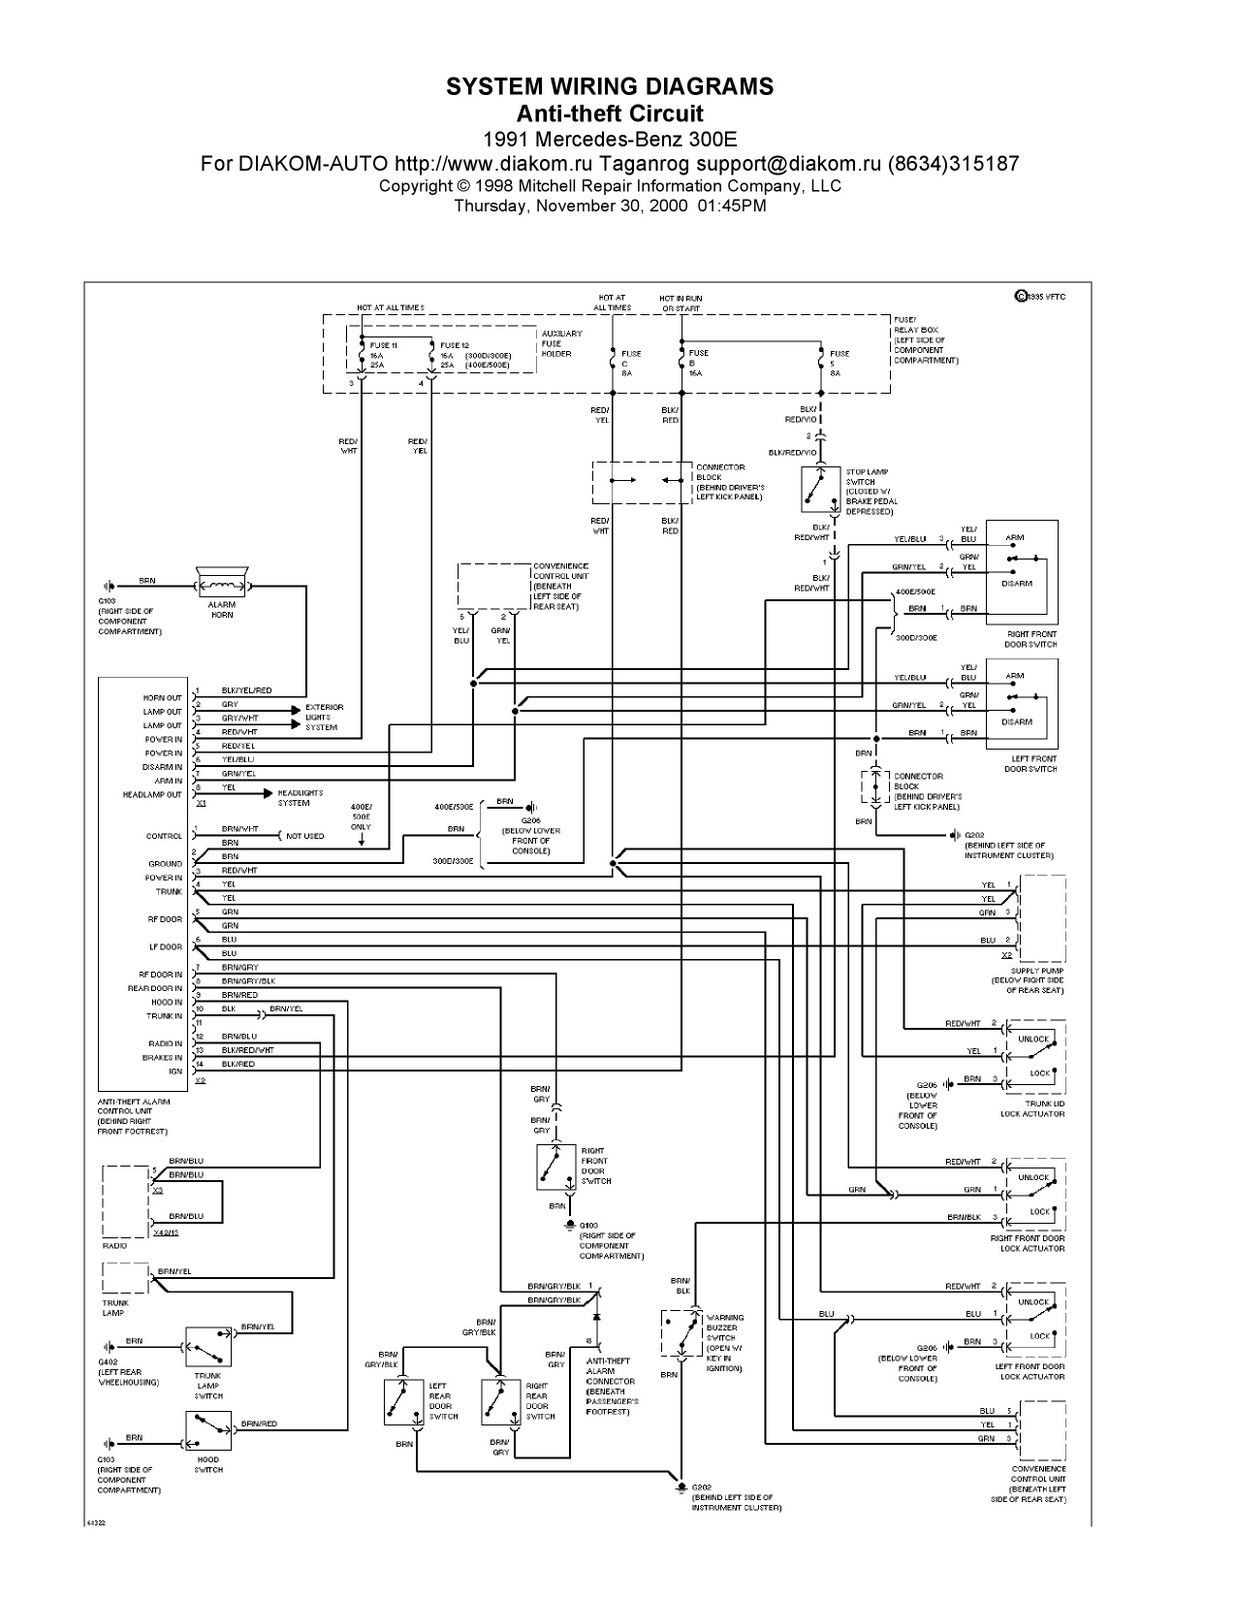 Unique W211 Amplifier Wiring Diagram Electrical Diagram Electrical Wiring Diagram Diagram